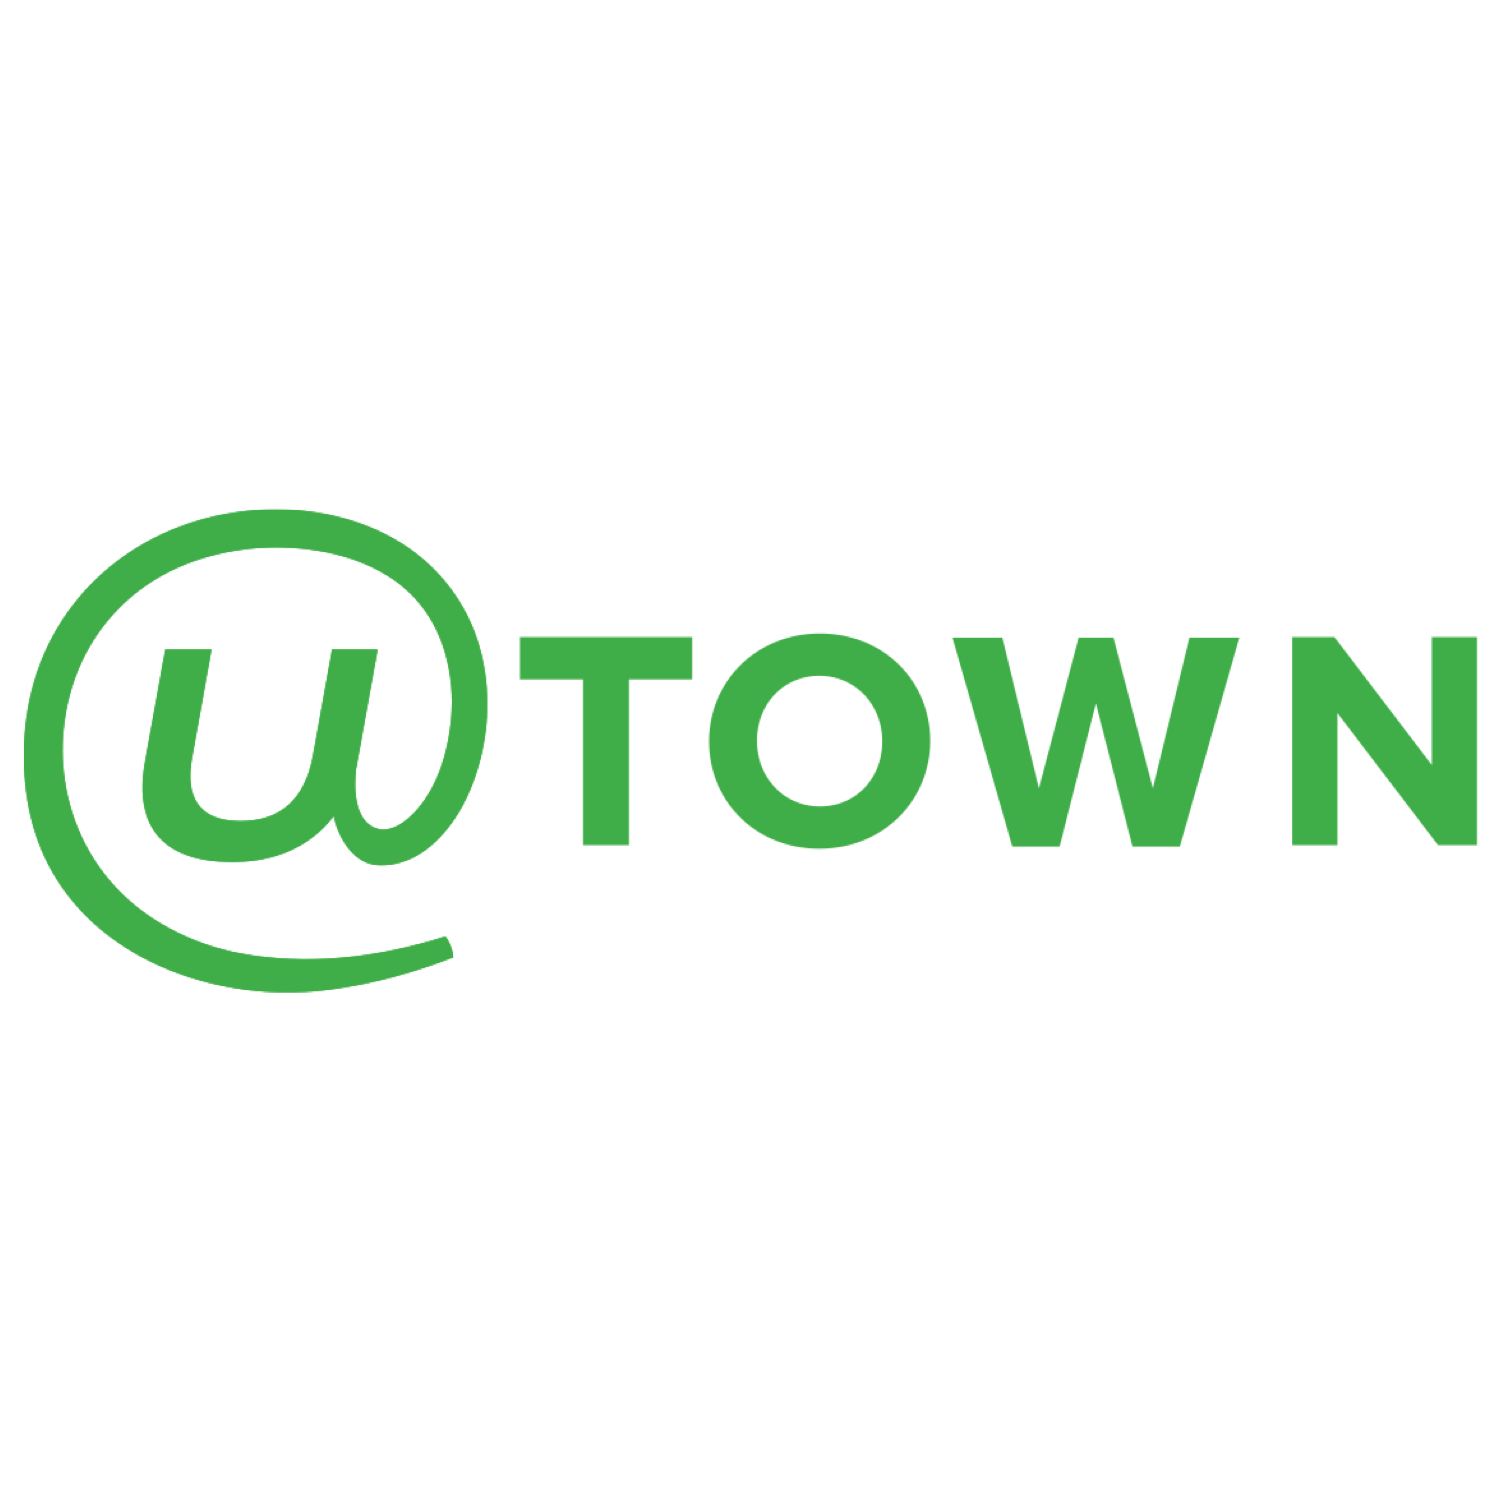 Utown   Utown is a social navigation company. Our mission is to enable individuals to explore, share and interact in real-time with what's happening in their community.